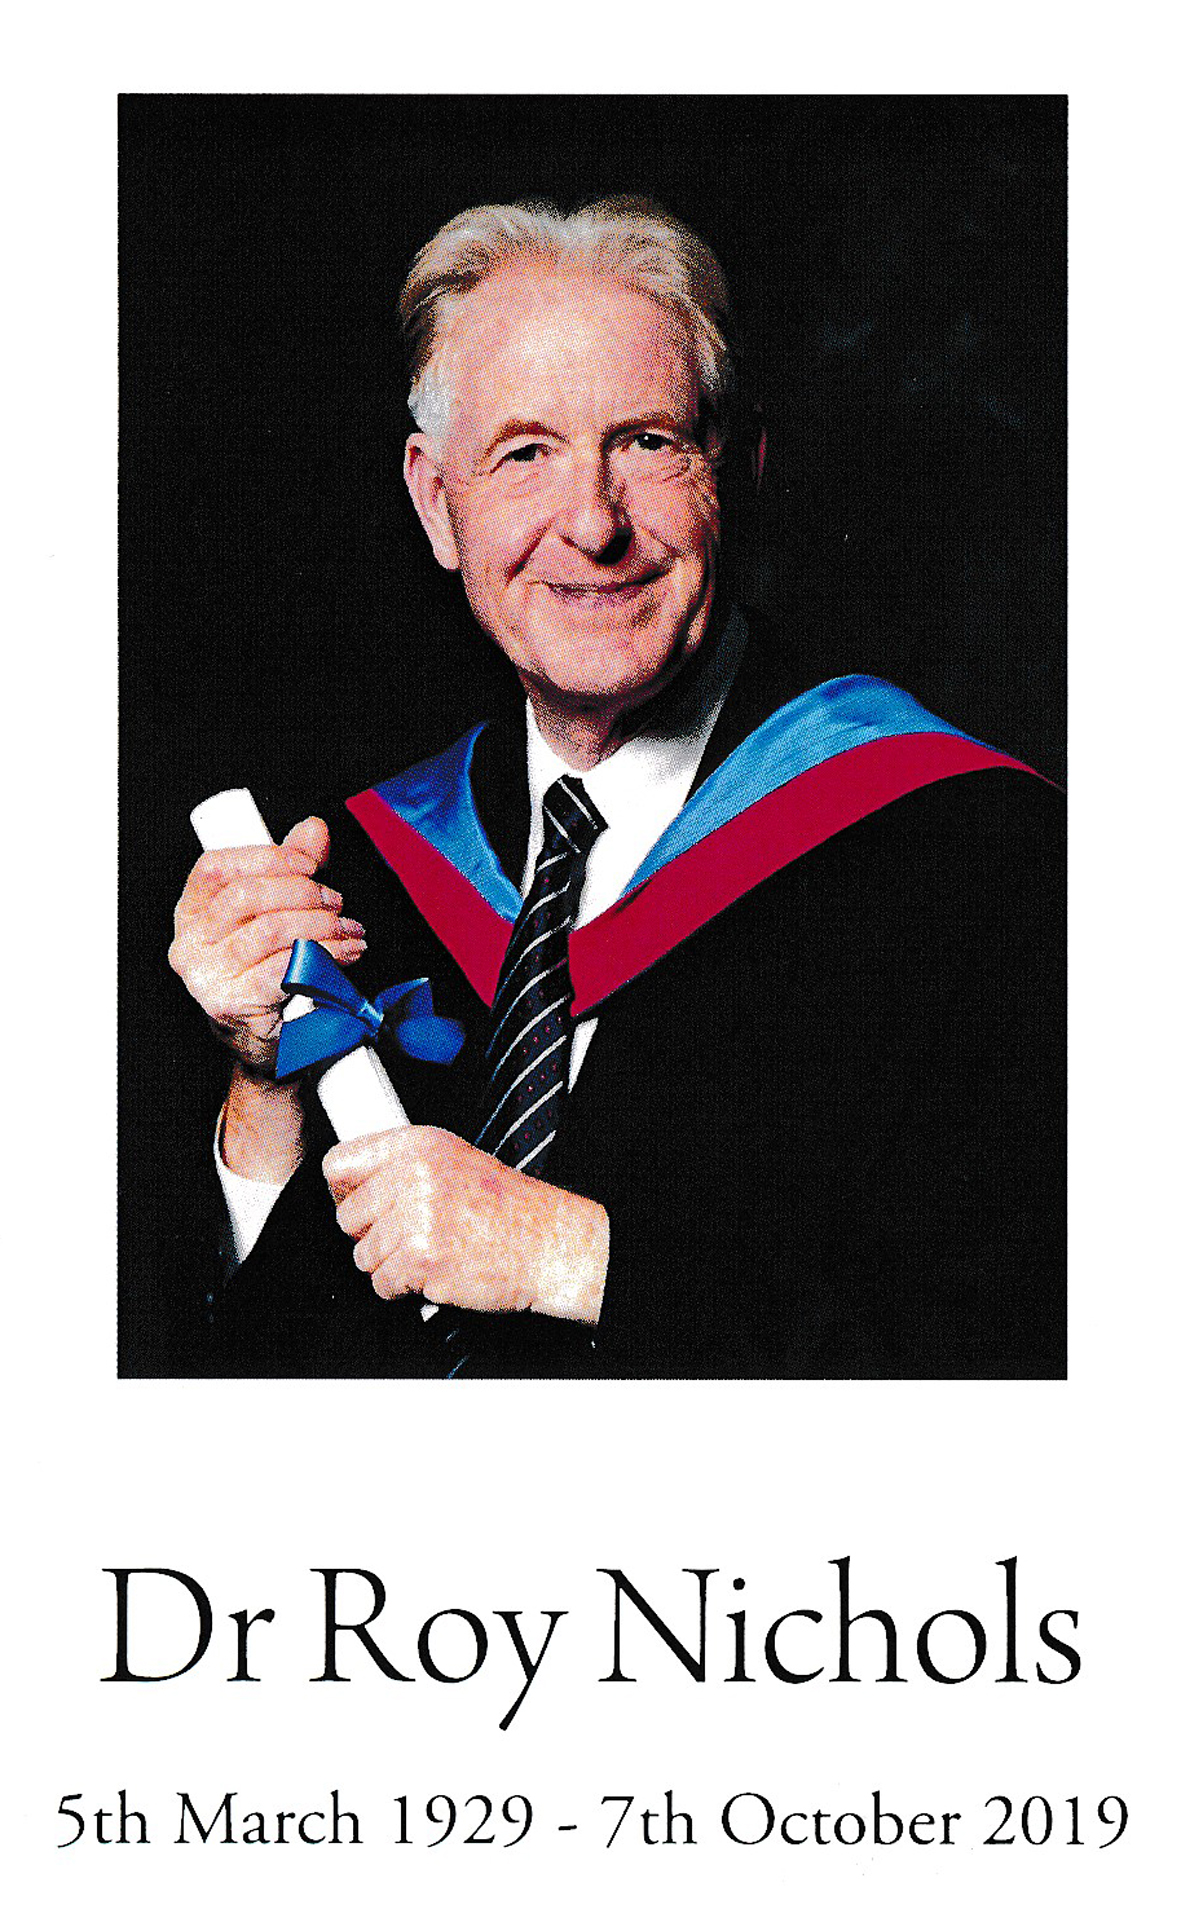 Roy Nichols PhD passed away on 7th October 2019